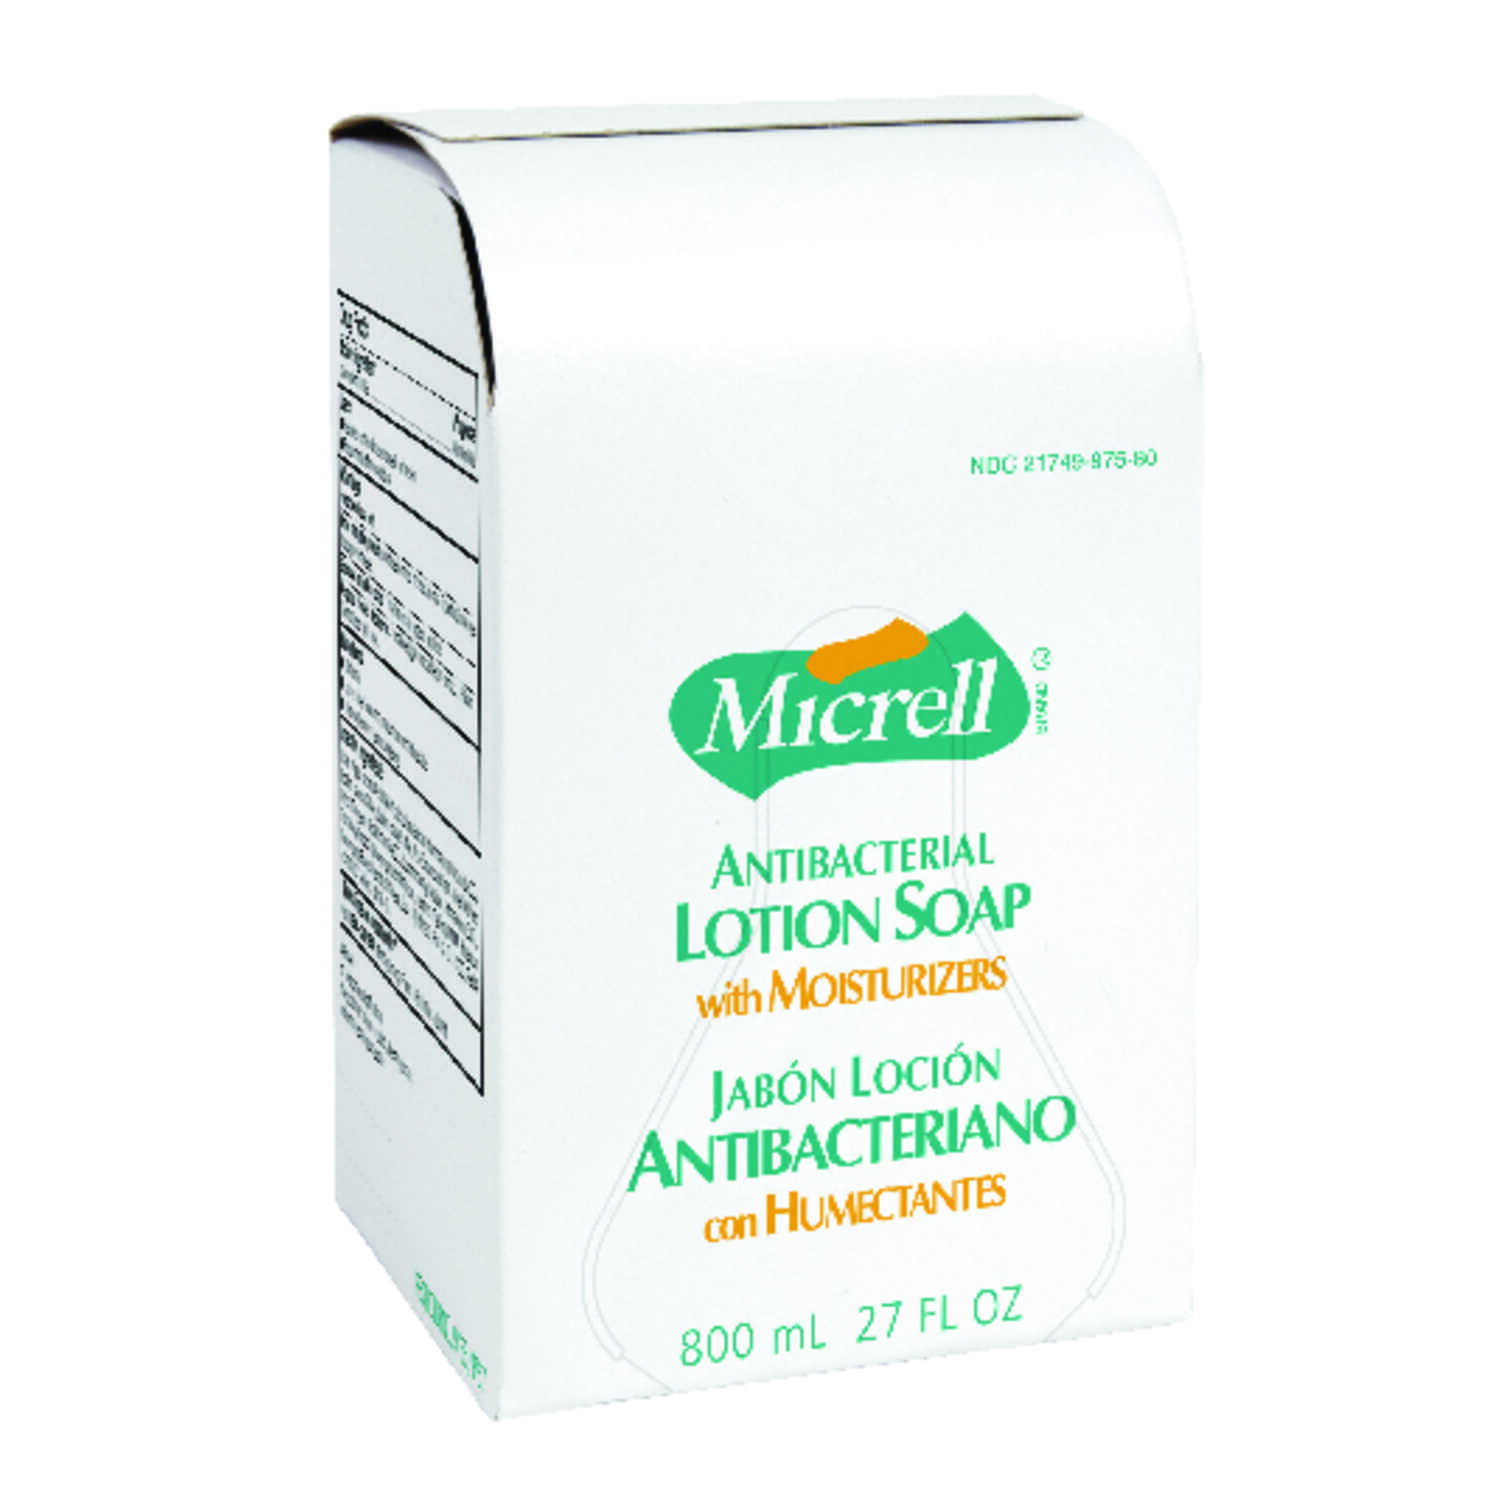 Micrell  Antibacterial Lotion Soap Dispenser Refill  800 ml